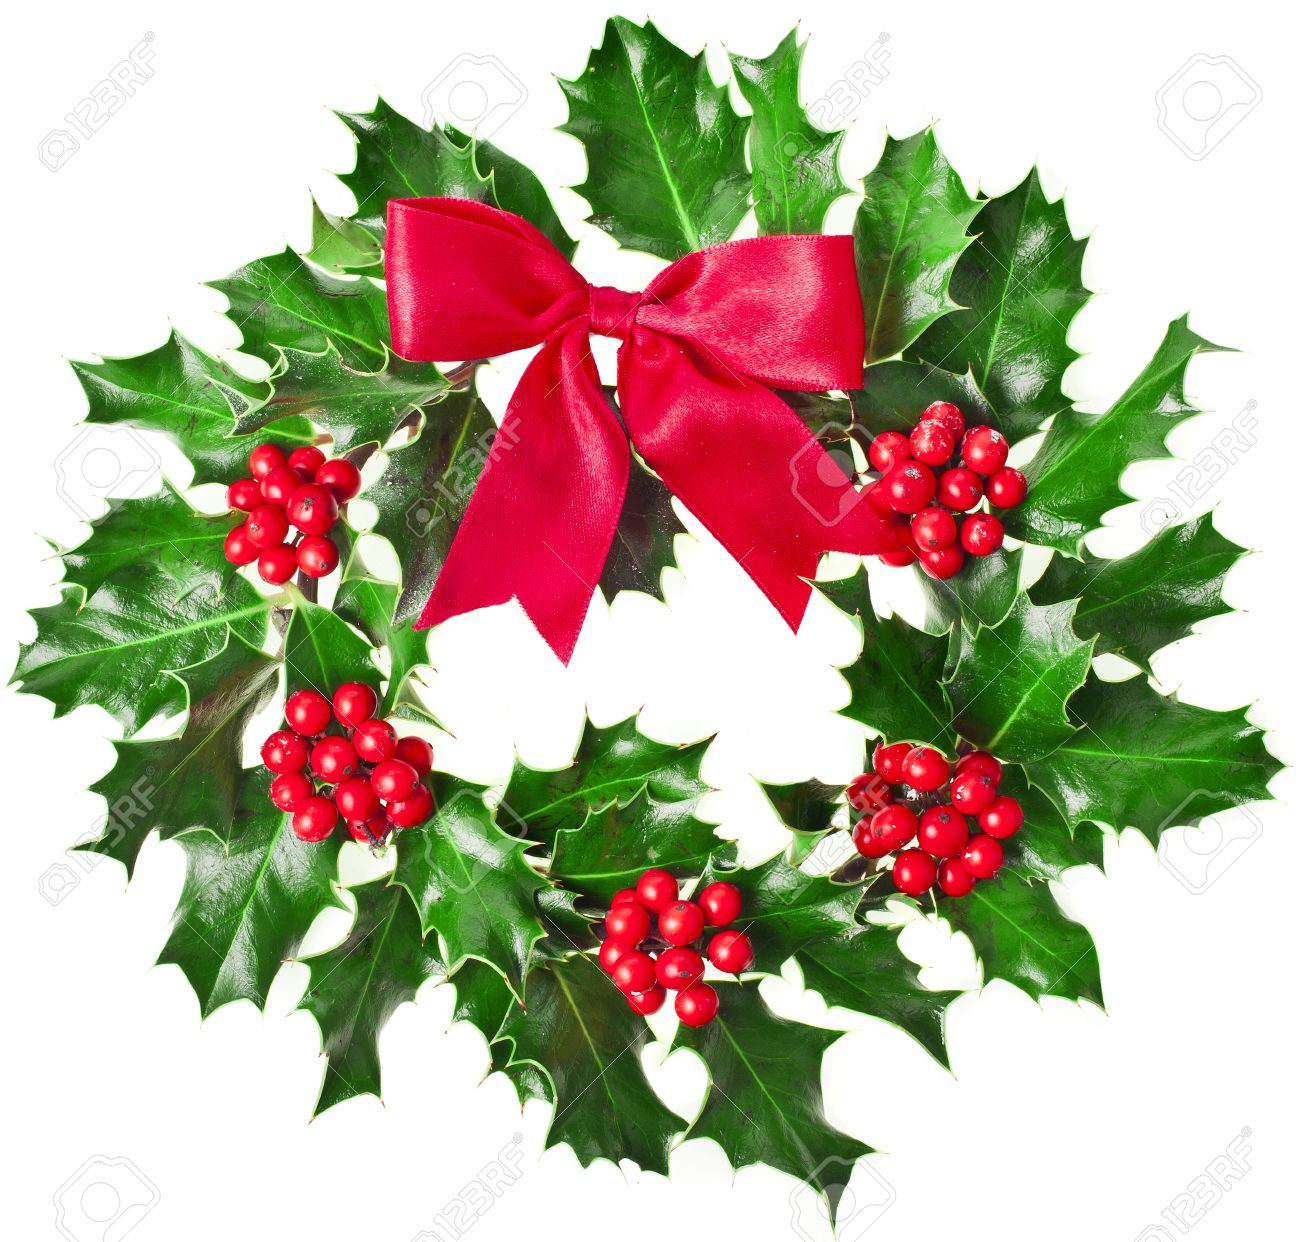 Lovely Christmas Holly Tree Part - 3: Christmas Decoration Wreath Of Fresh Berries And Leaves Holly Tree Isolated  On White Background Stock Photo